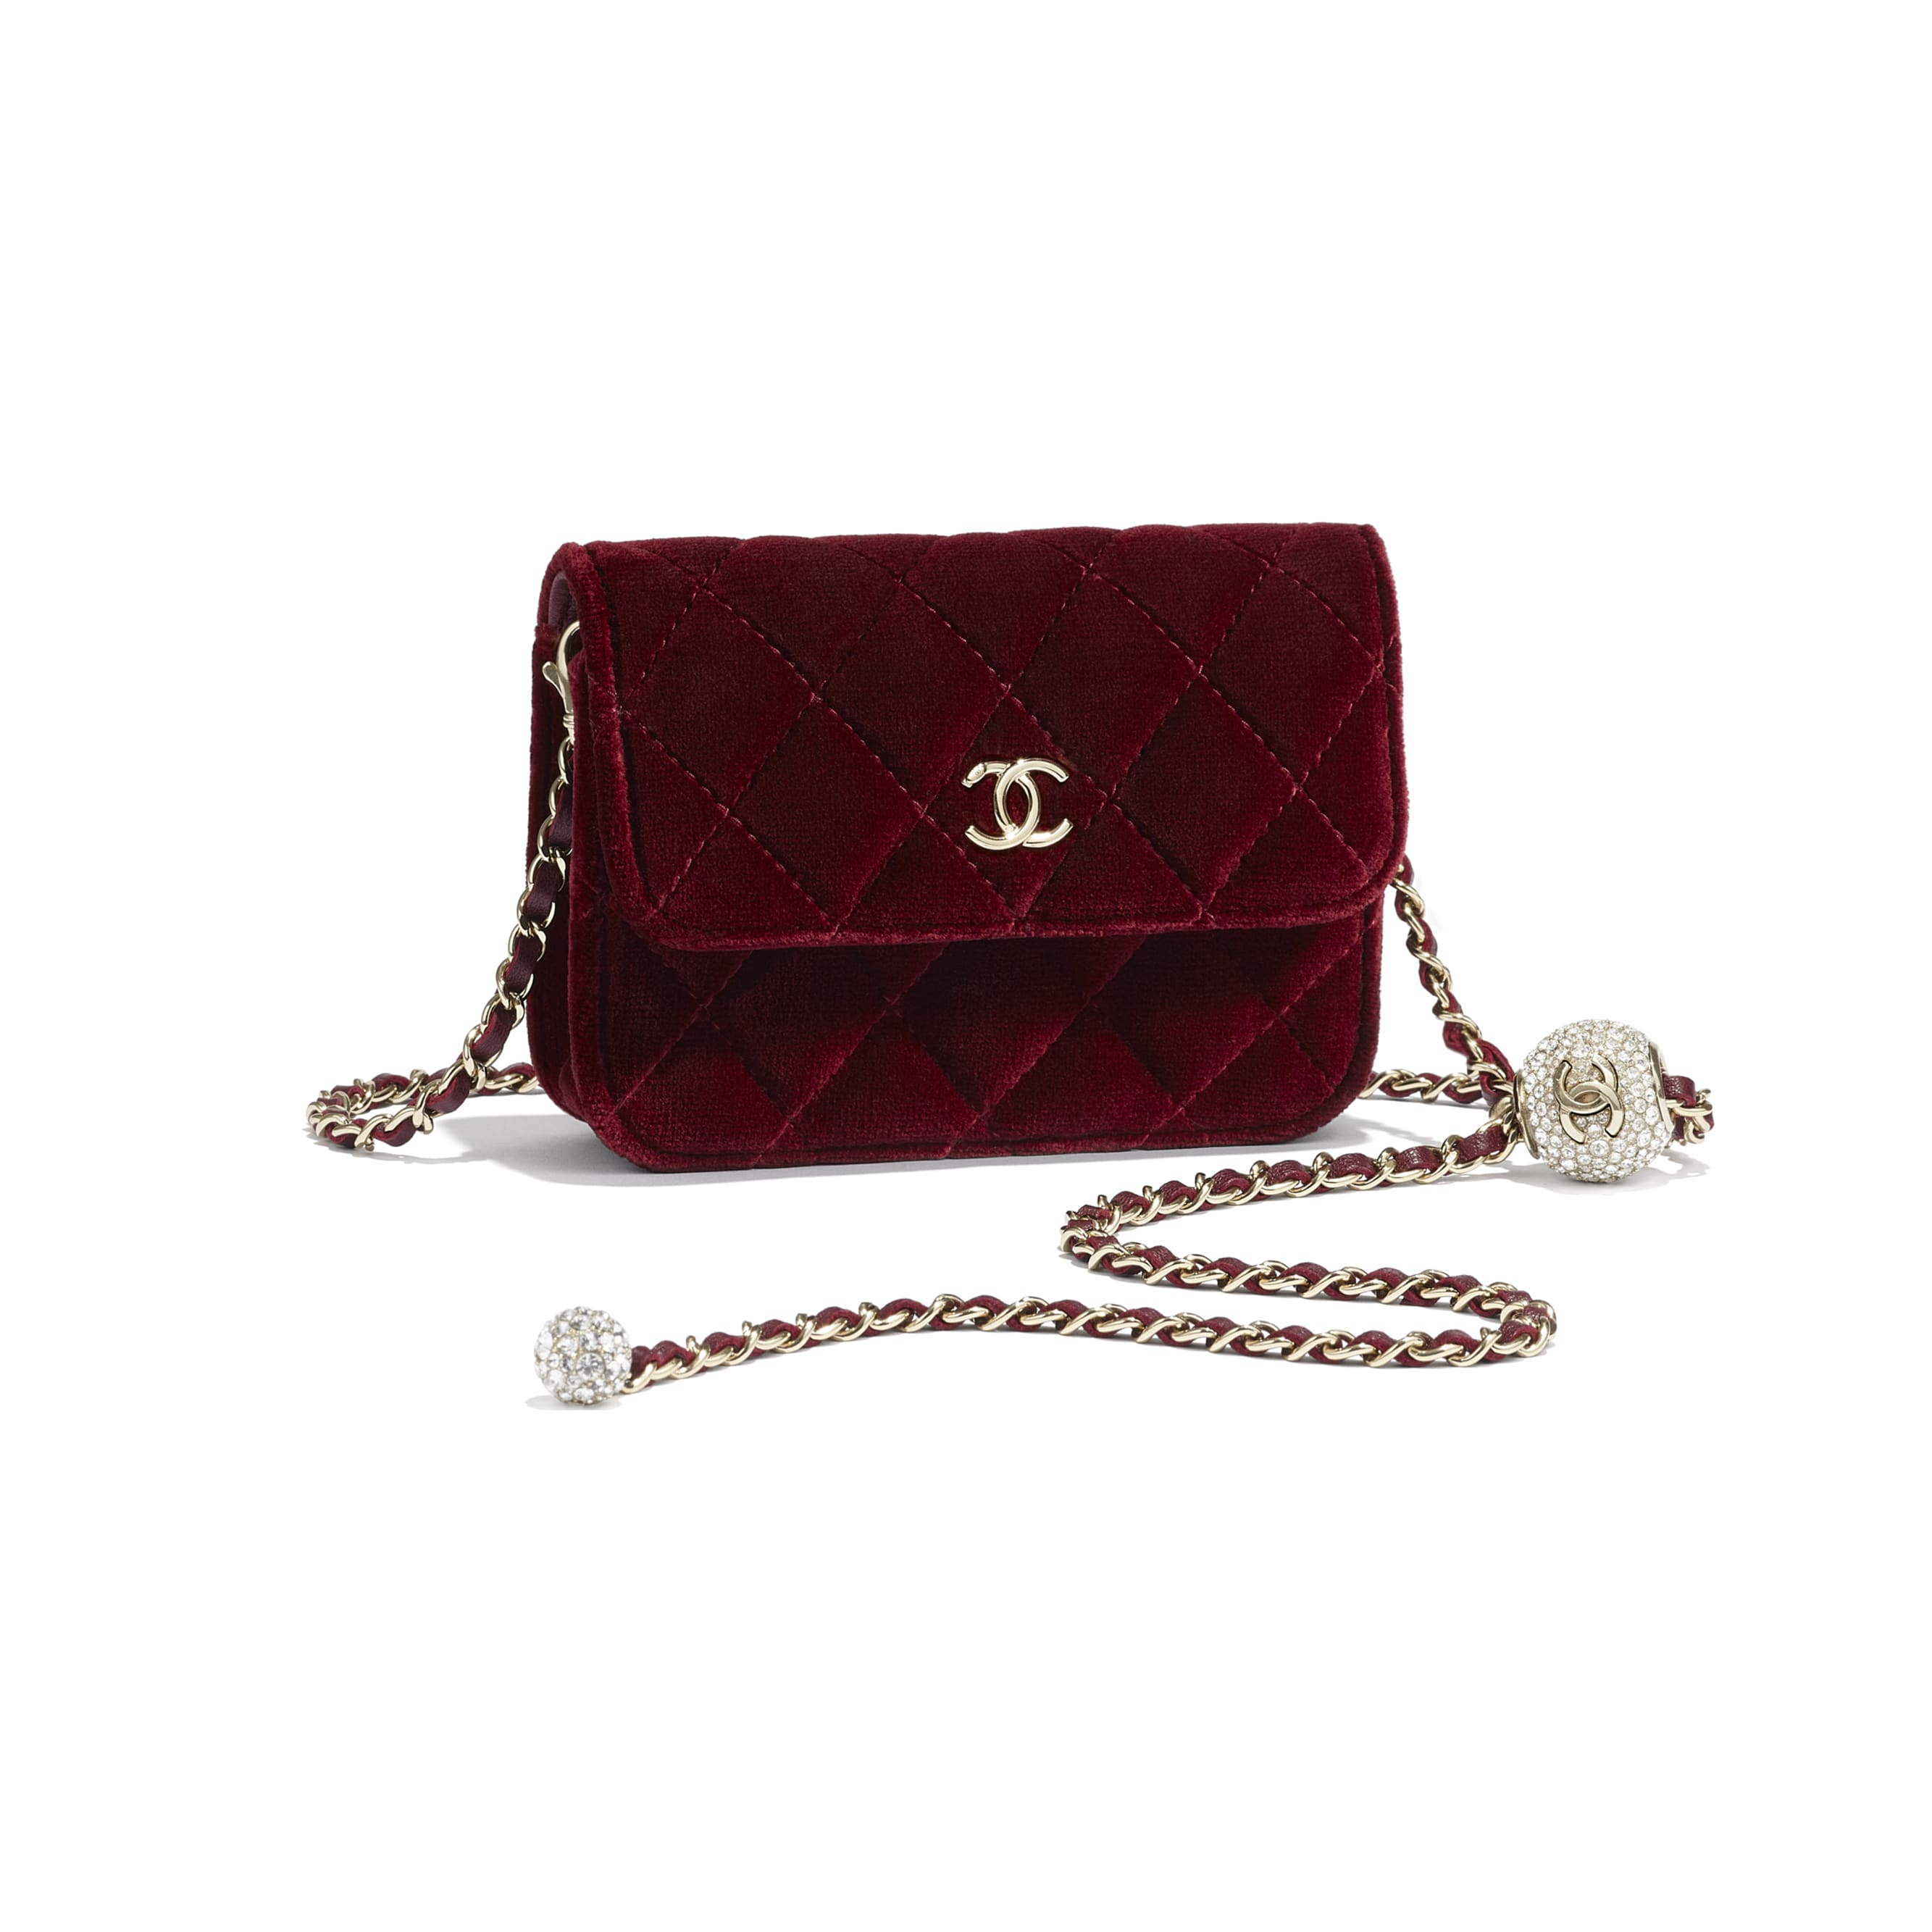 Clutch With Chain - Burgundy - Velvet, Diamanté & Gold-Tone Metal - CHANEL - Extra view - see standard sized version